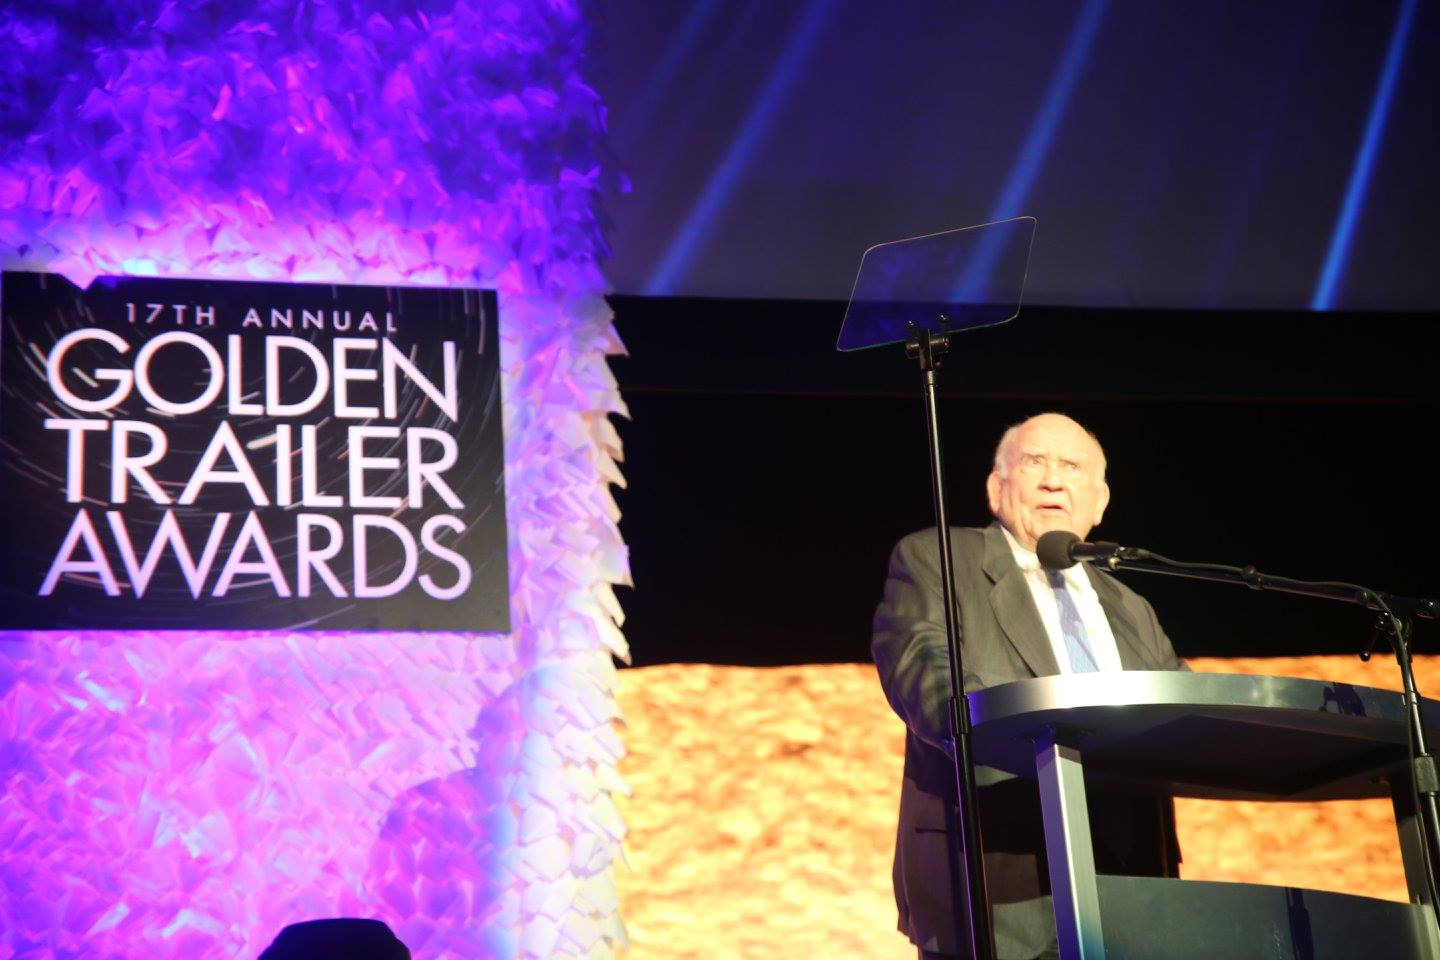 ENTERTAINMENT: Ed Asner presents the Best in Show award at the 17th Annual Golden Trailer Awards. Photo: J. Willie David III/Florida National News.